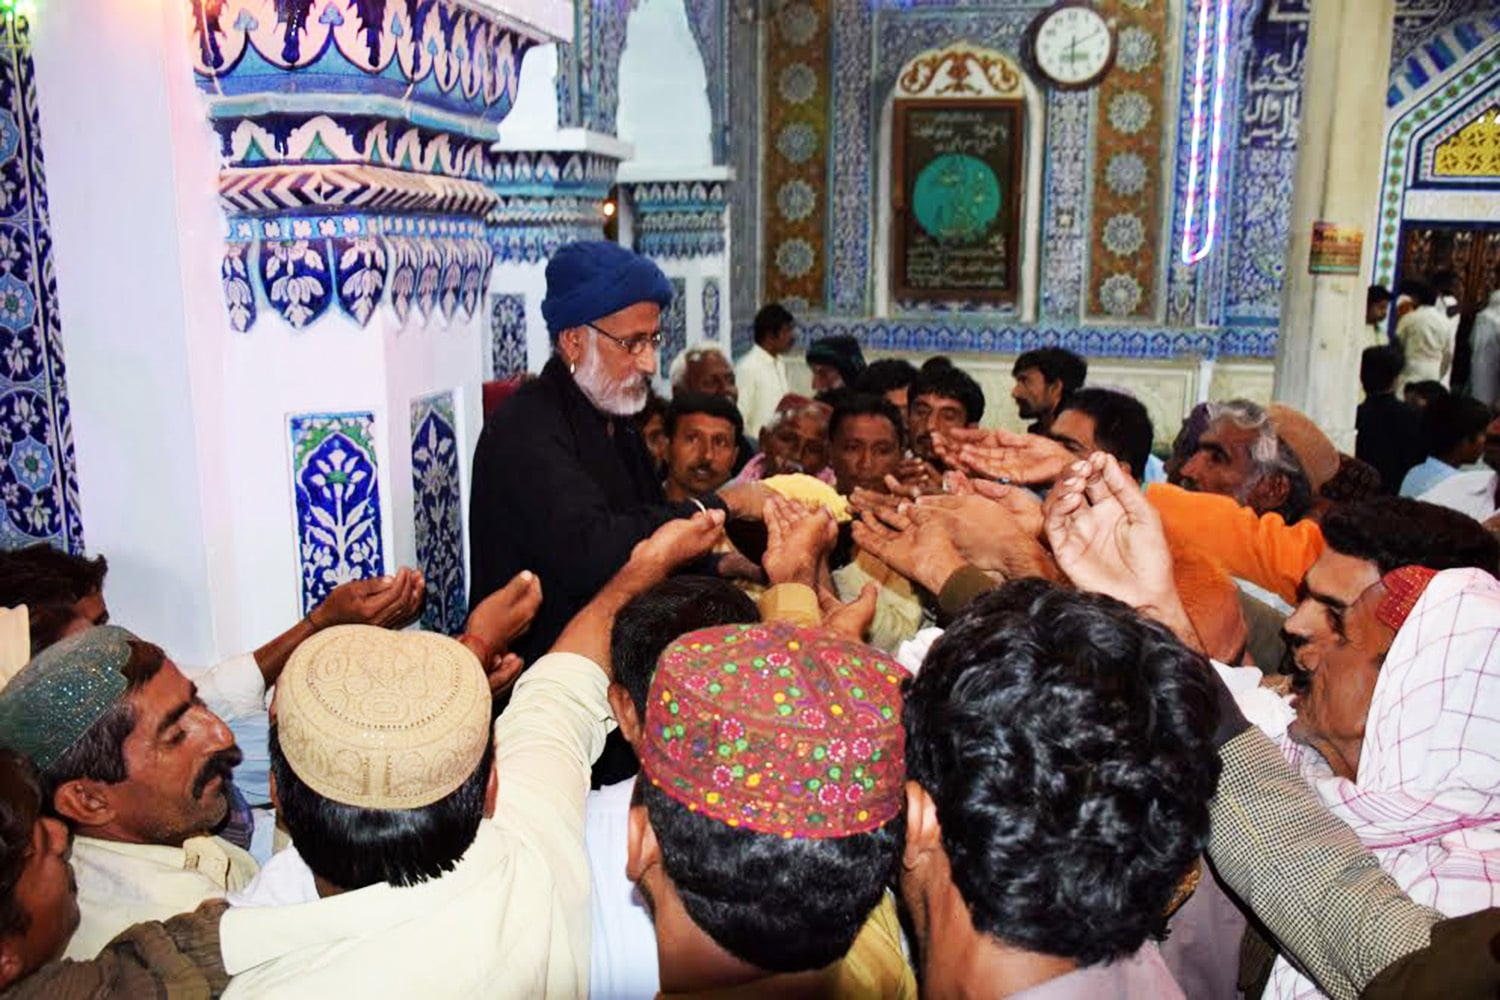 Distribution of 'lungar' (food) among devotees.